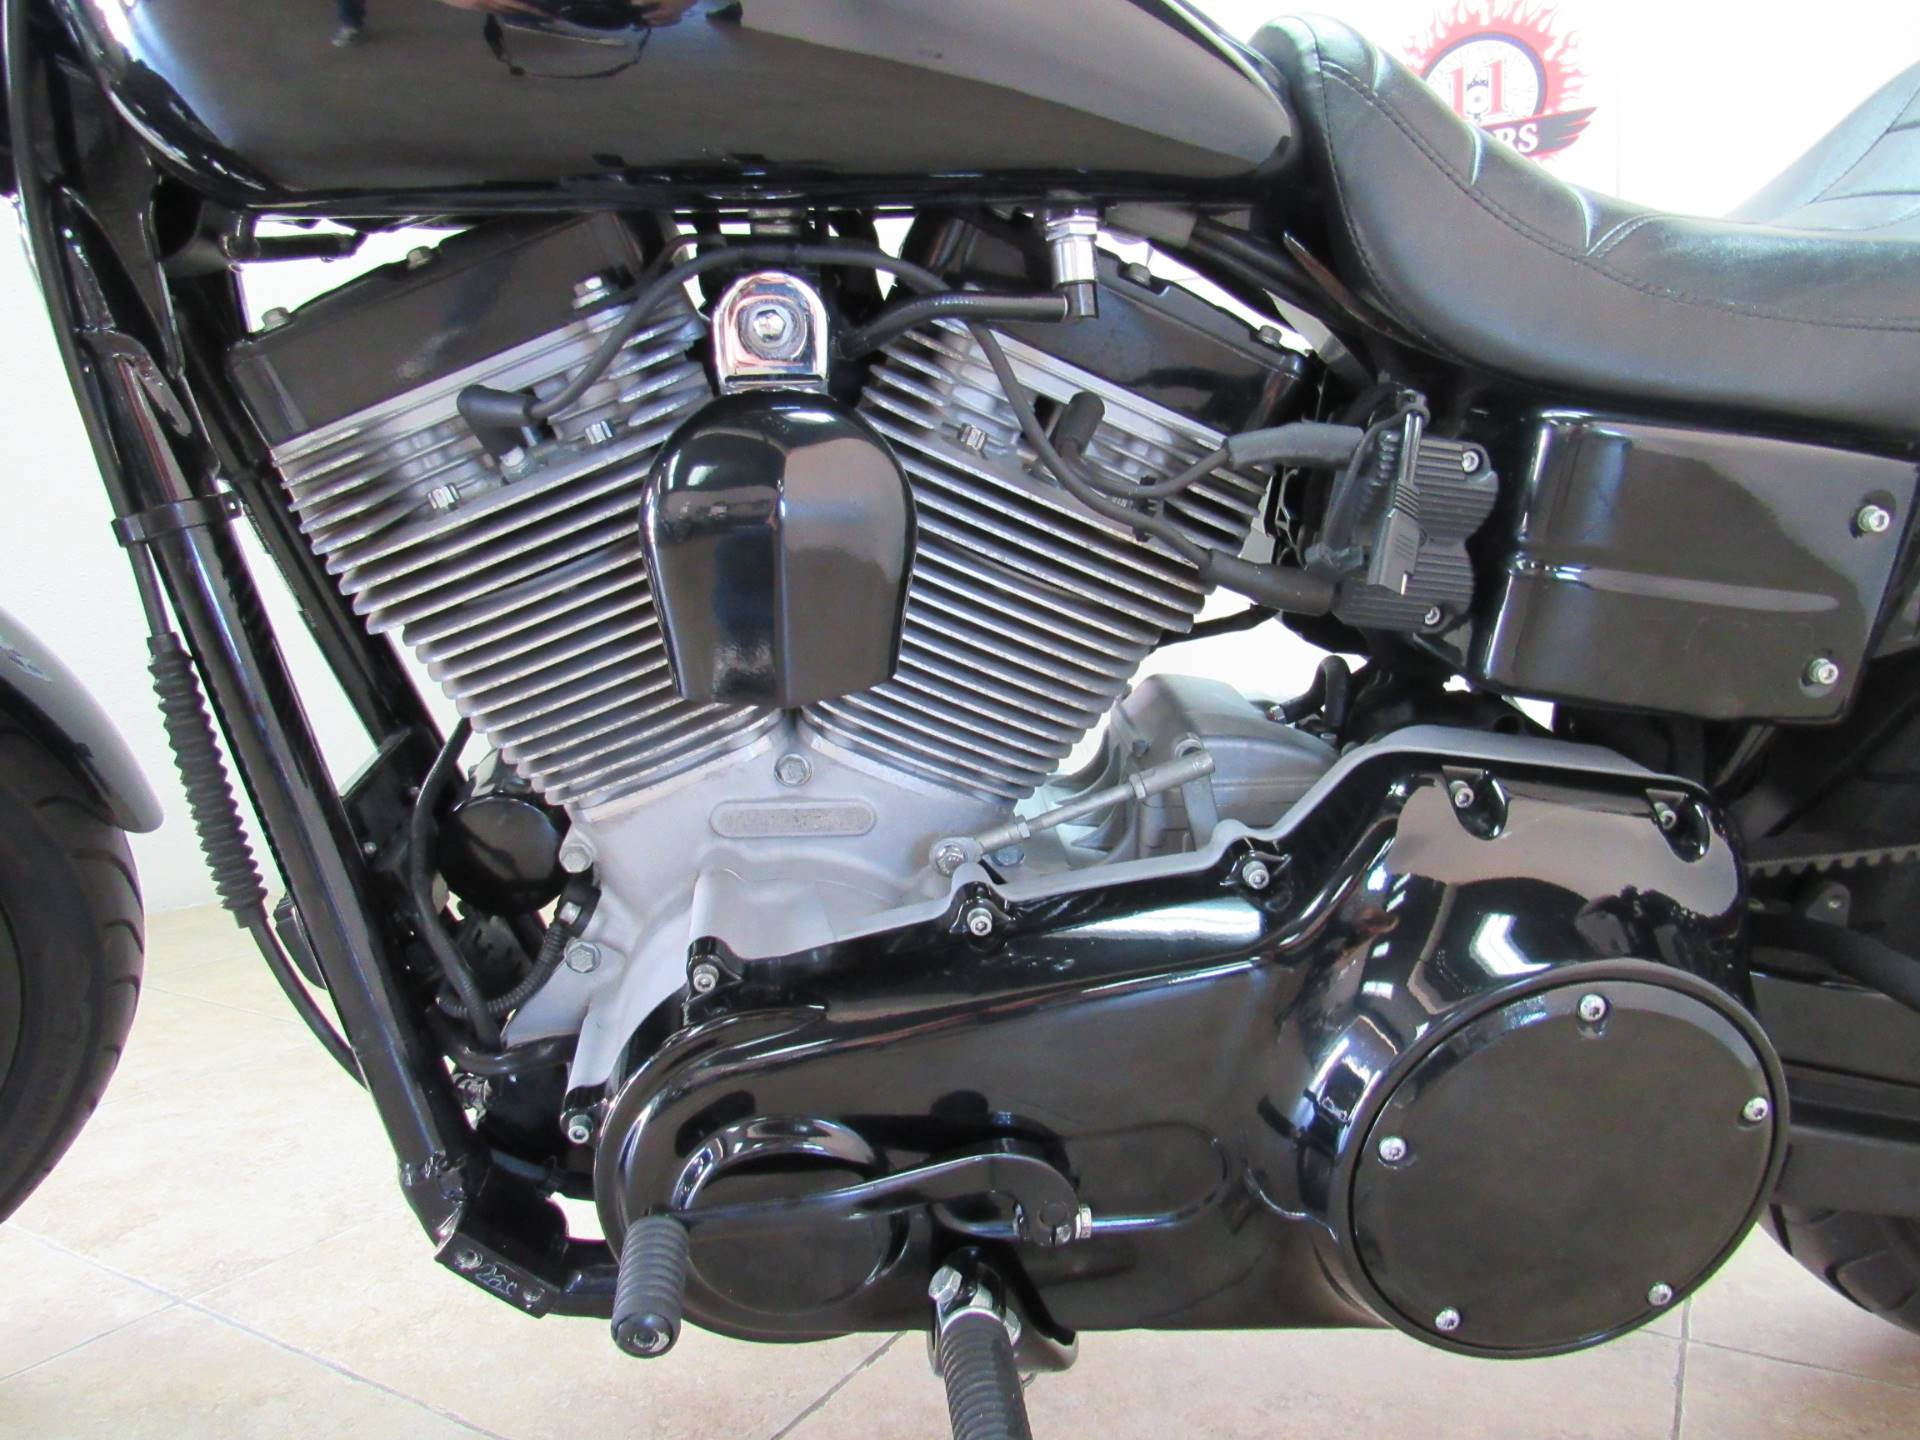 2007 Harley-Davidson Dyna® Super Glide® Custom in Temecula, California - Photo 11